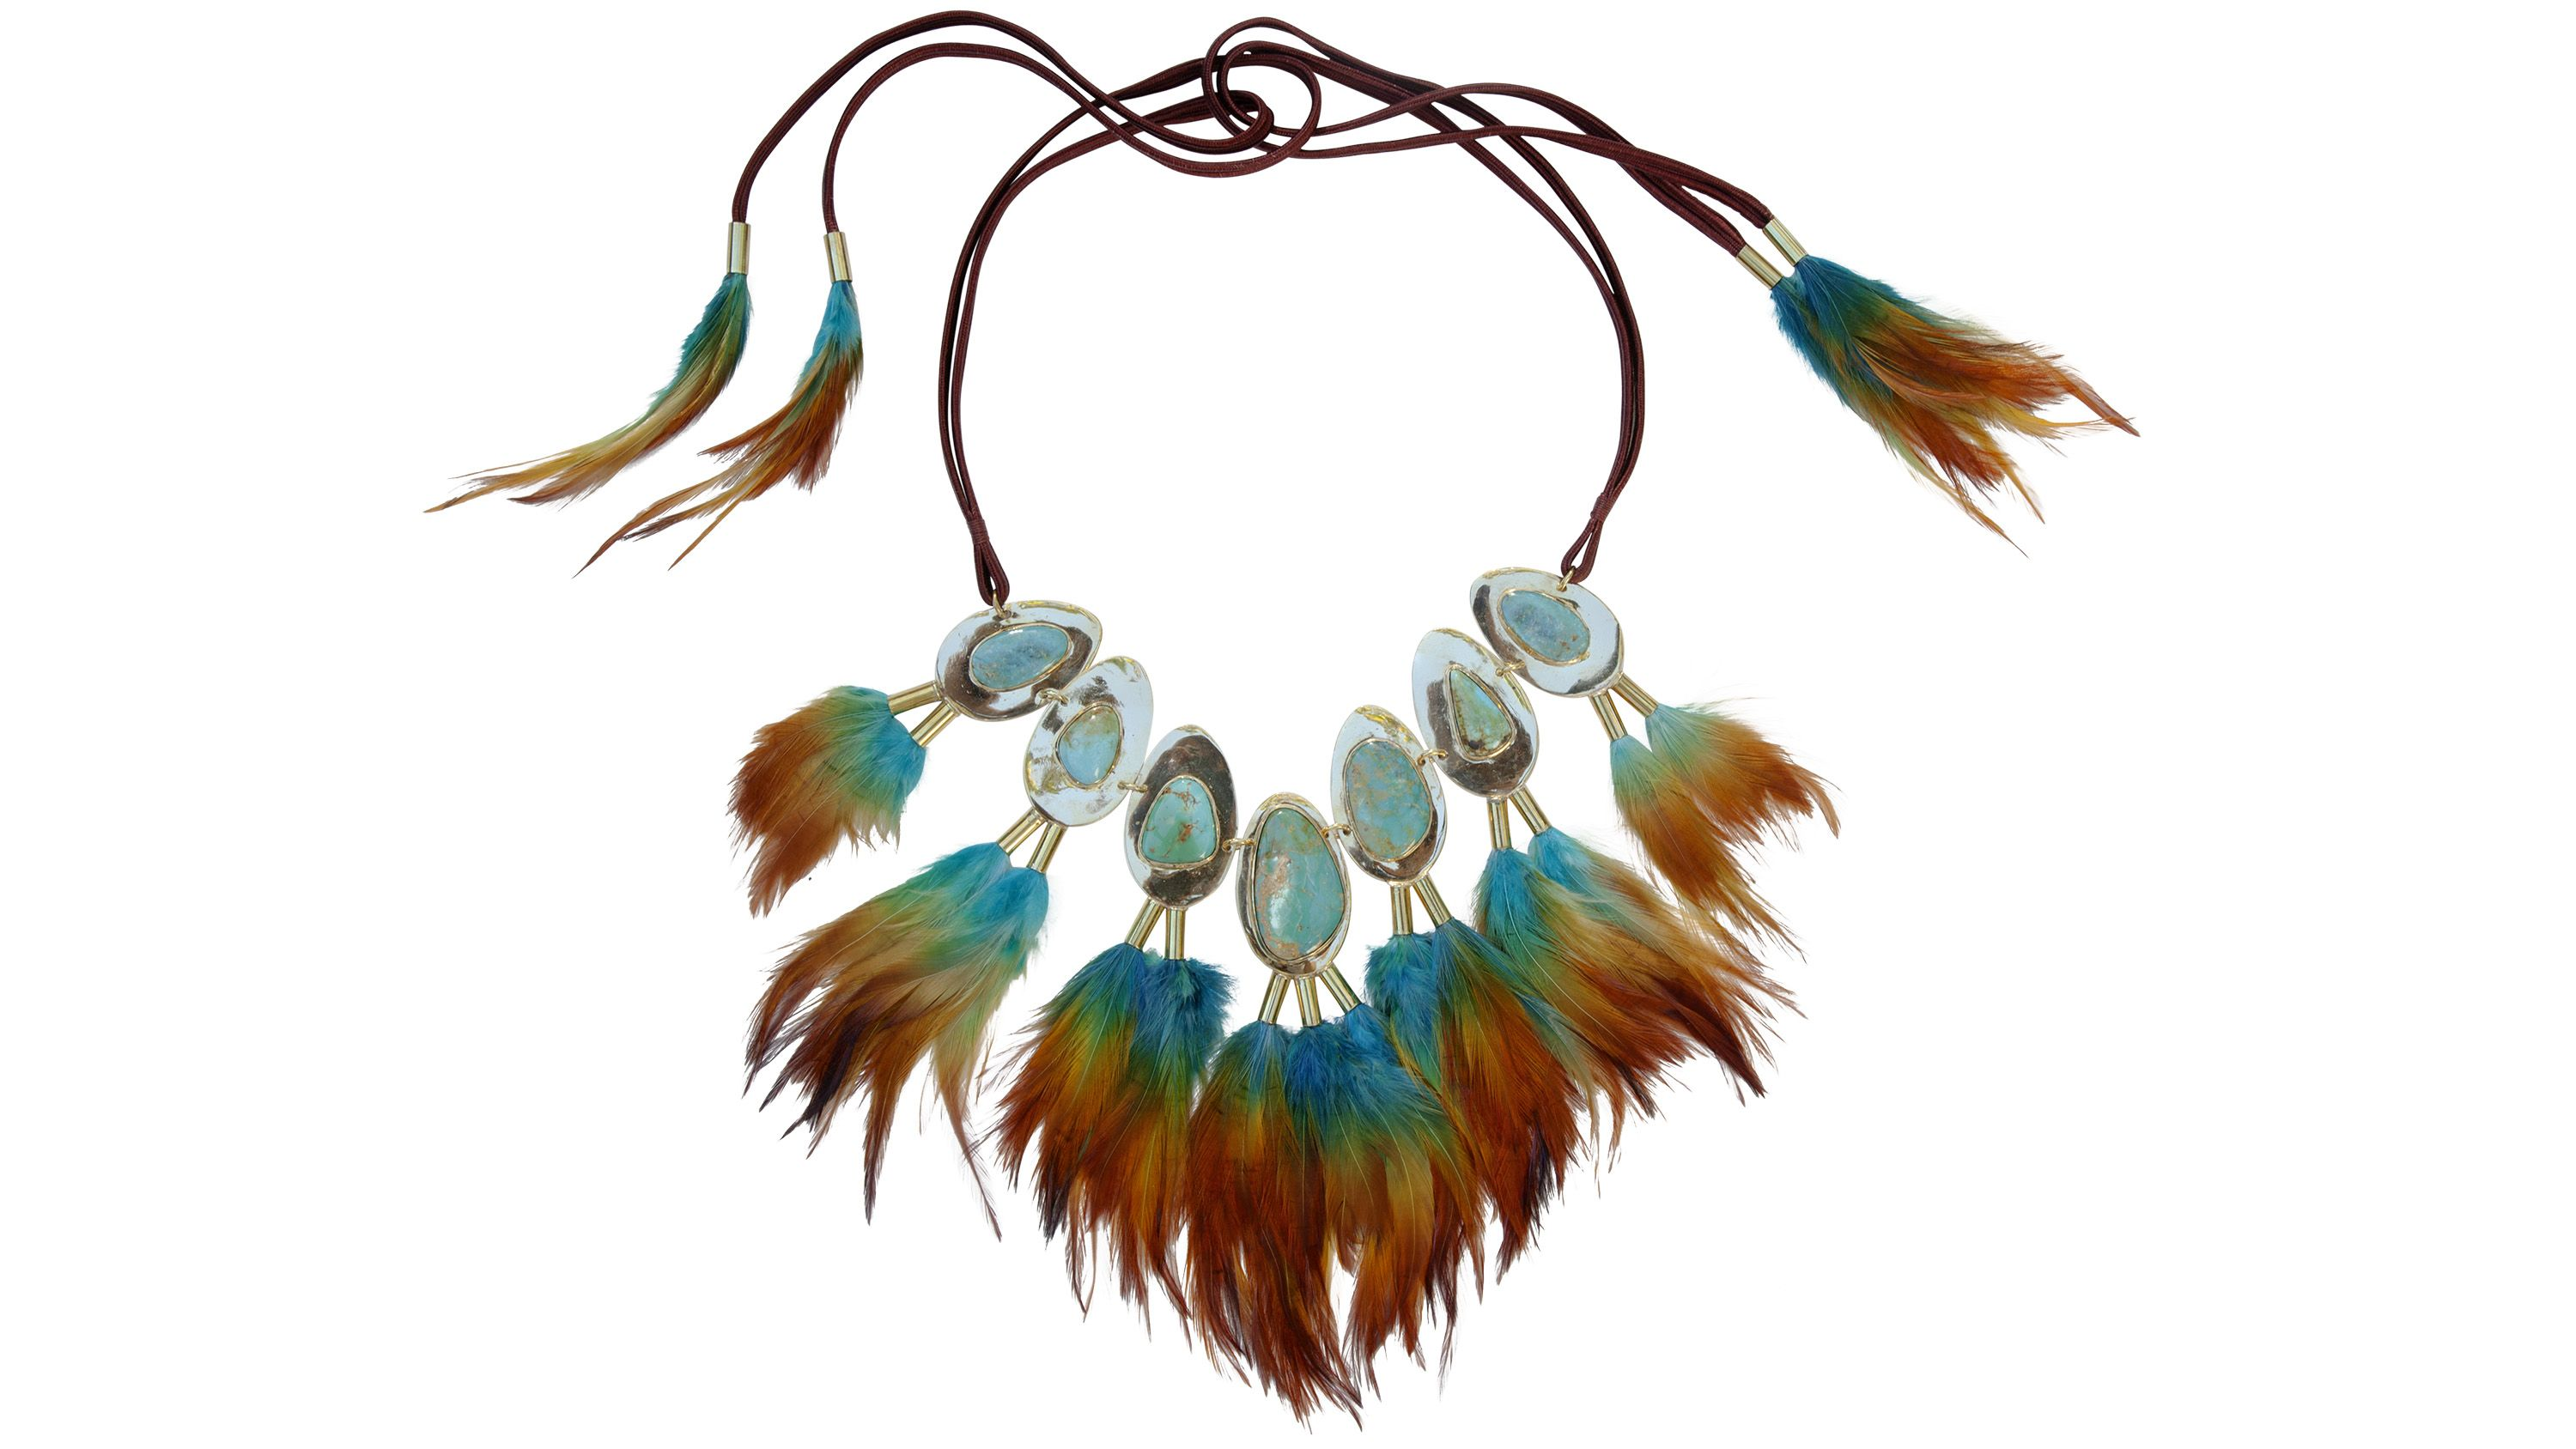 """<p><strong>Lisa Eisner Jewelry</strong> necklace, $10,000, <a target=""""_blank"""" href=""""http://lisaeisnerjewelry.com/collection.html"""">lisaeisnerjewelry.com</a>.</p>"""